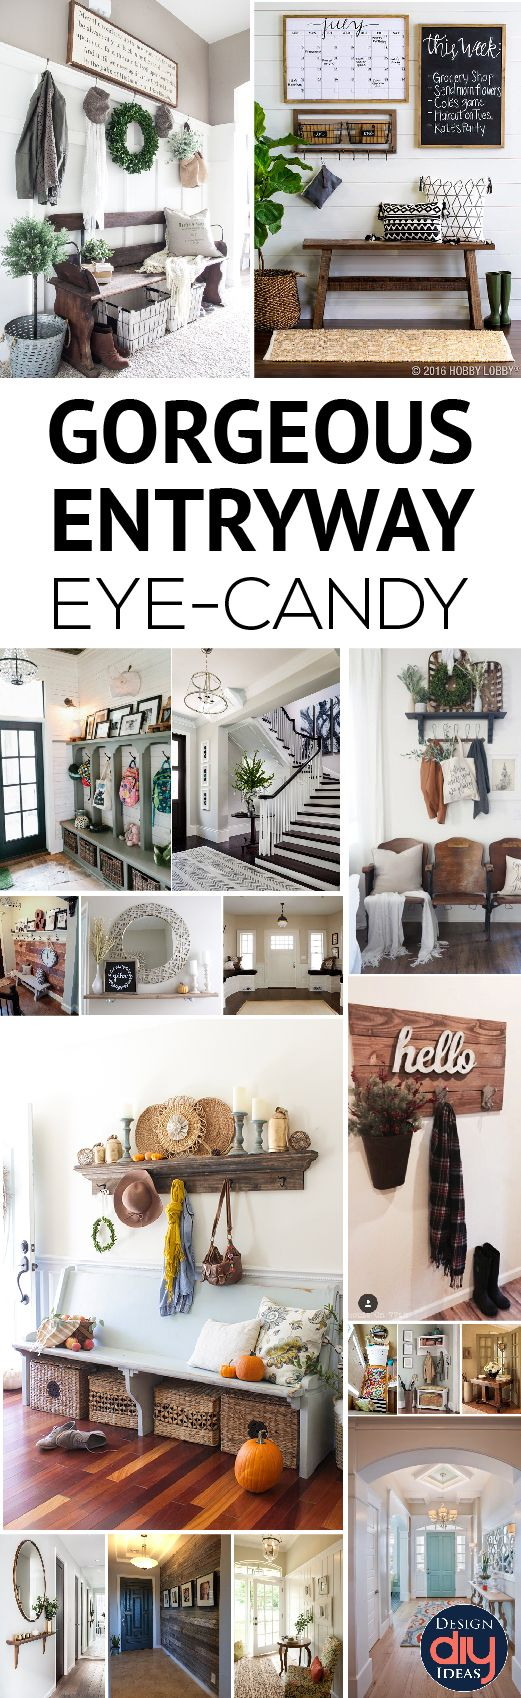 Gorgeous photos of entryway ideas for your home decor!